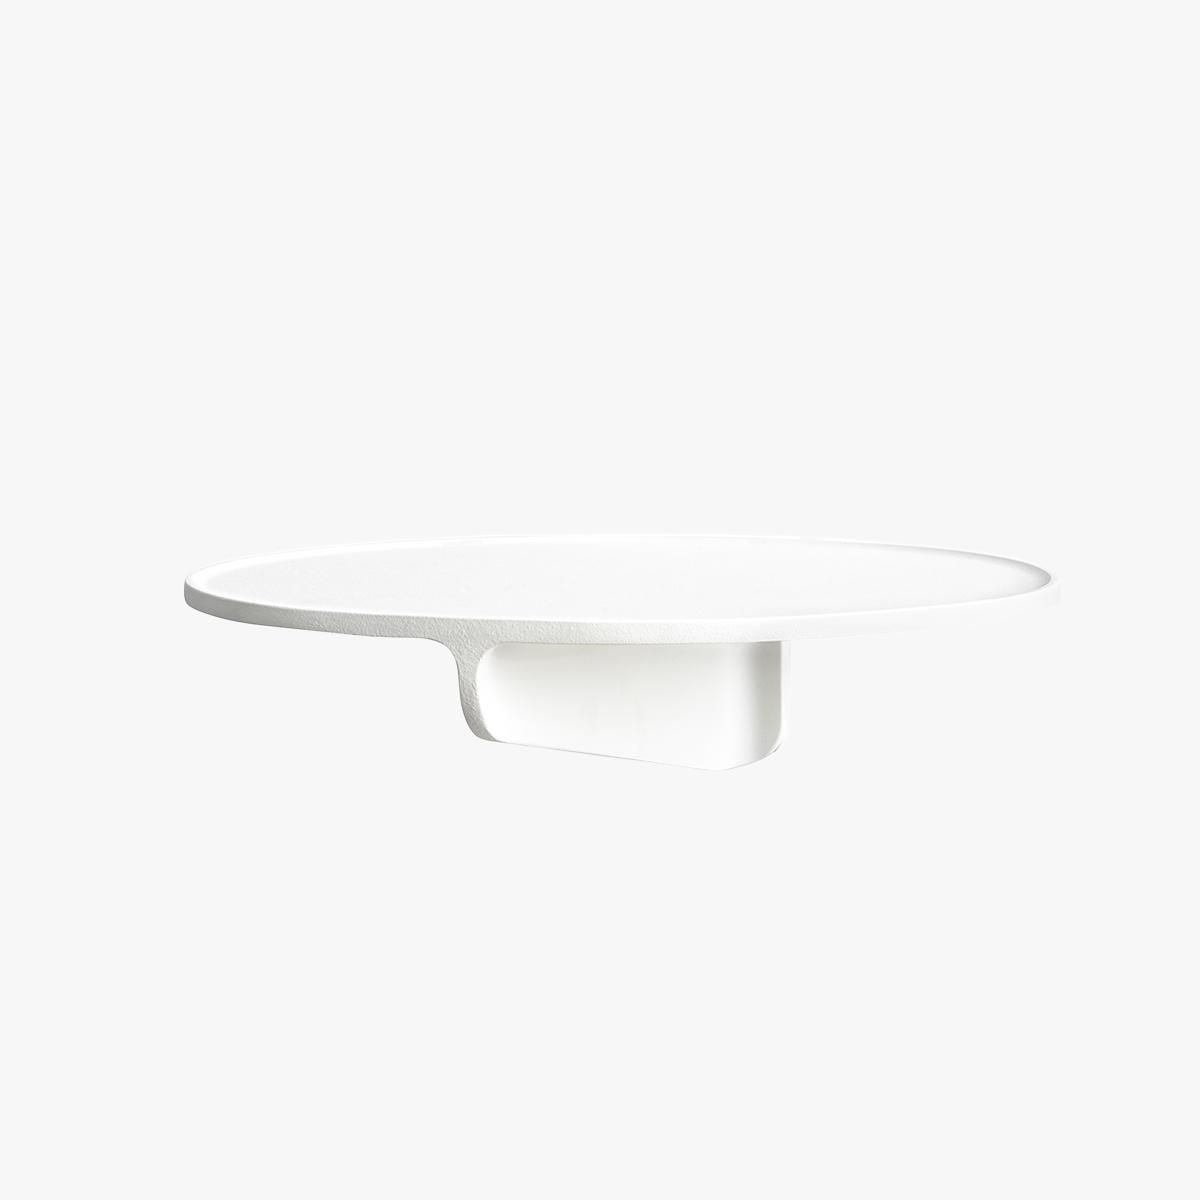 string-museum-shelf-white-1200f7